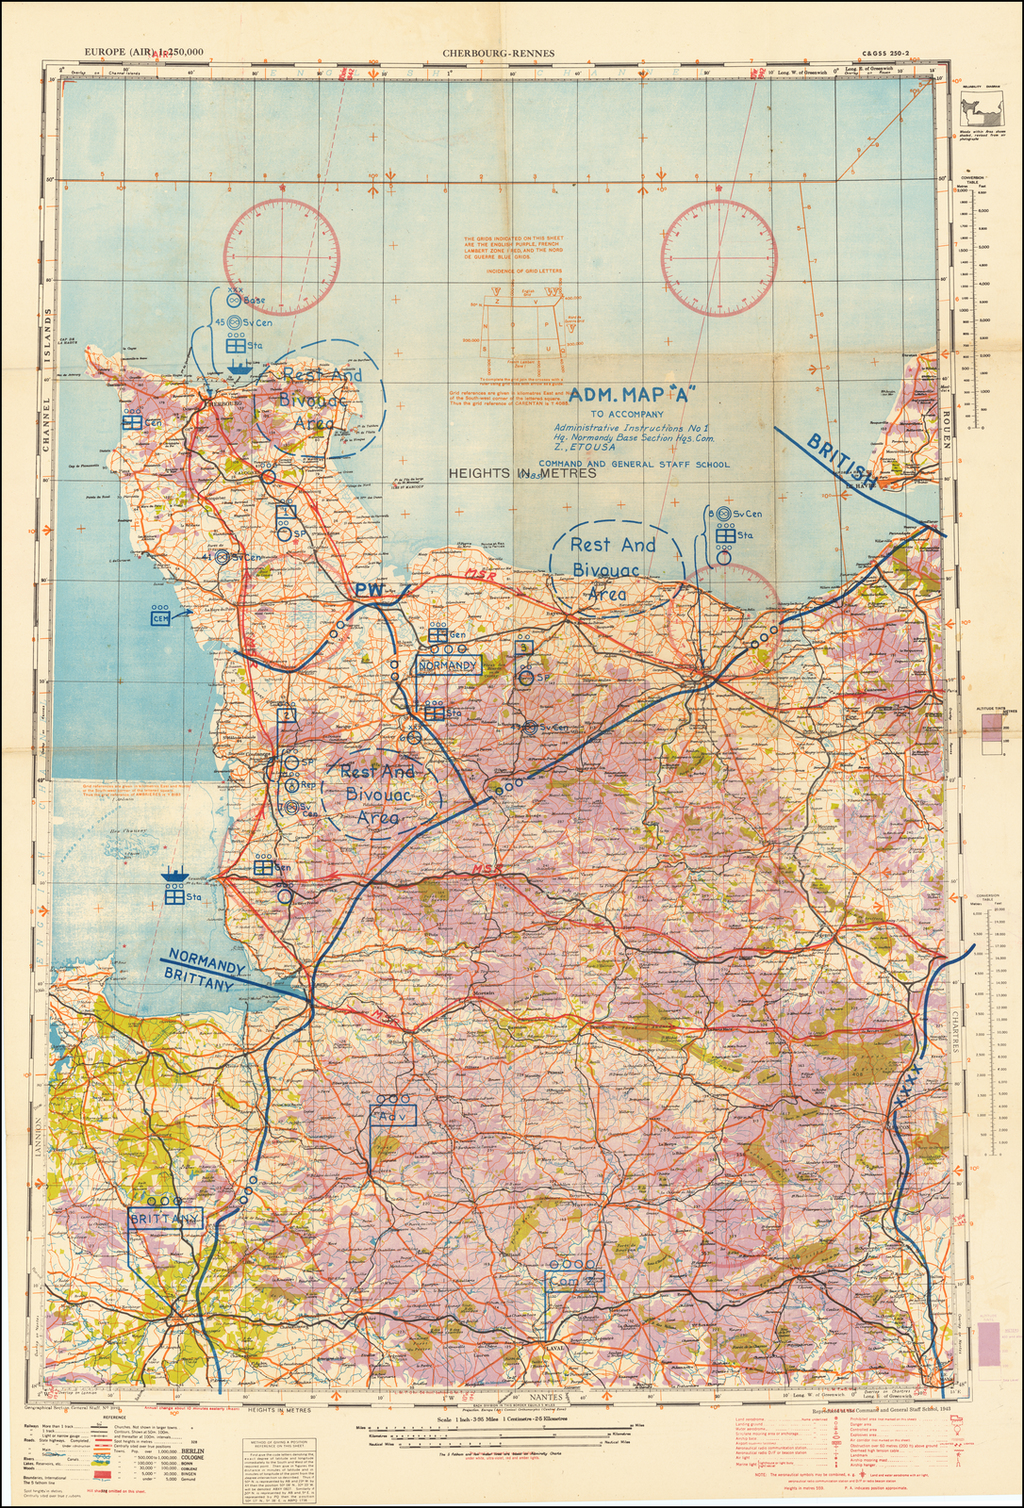 "(Second World War - Normandy Campaign) Cherbourg - Rennes | Adm. Map ""A"" To Accompany Administrative Instructions No 1 Hq. Normandy Base Section Hqs. Com[munication] Z[one], E[uropean] T[heater] [of] O[perations] U[nited] S[tates] A[rmy] By Geographical Section, War Office (UK)"